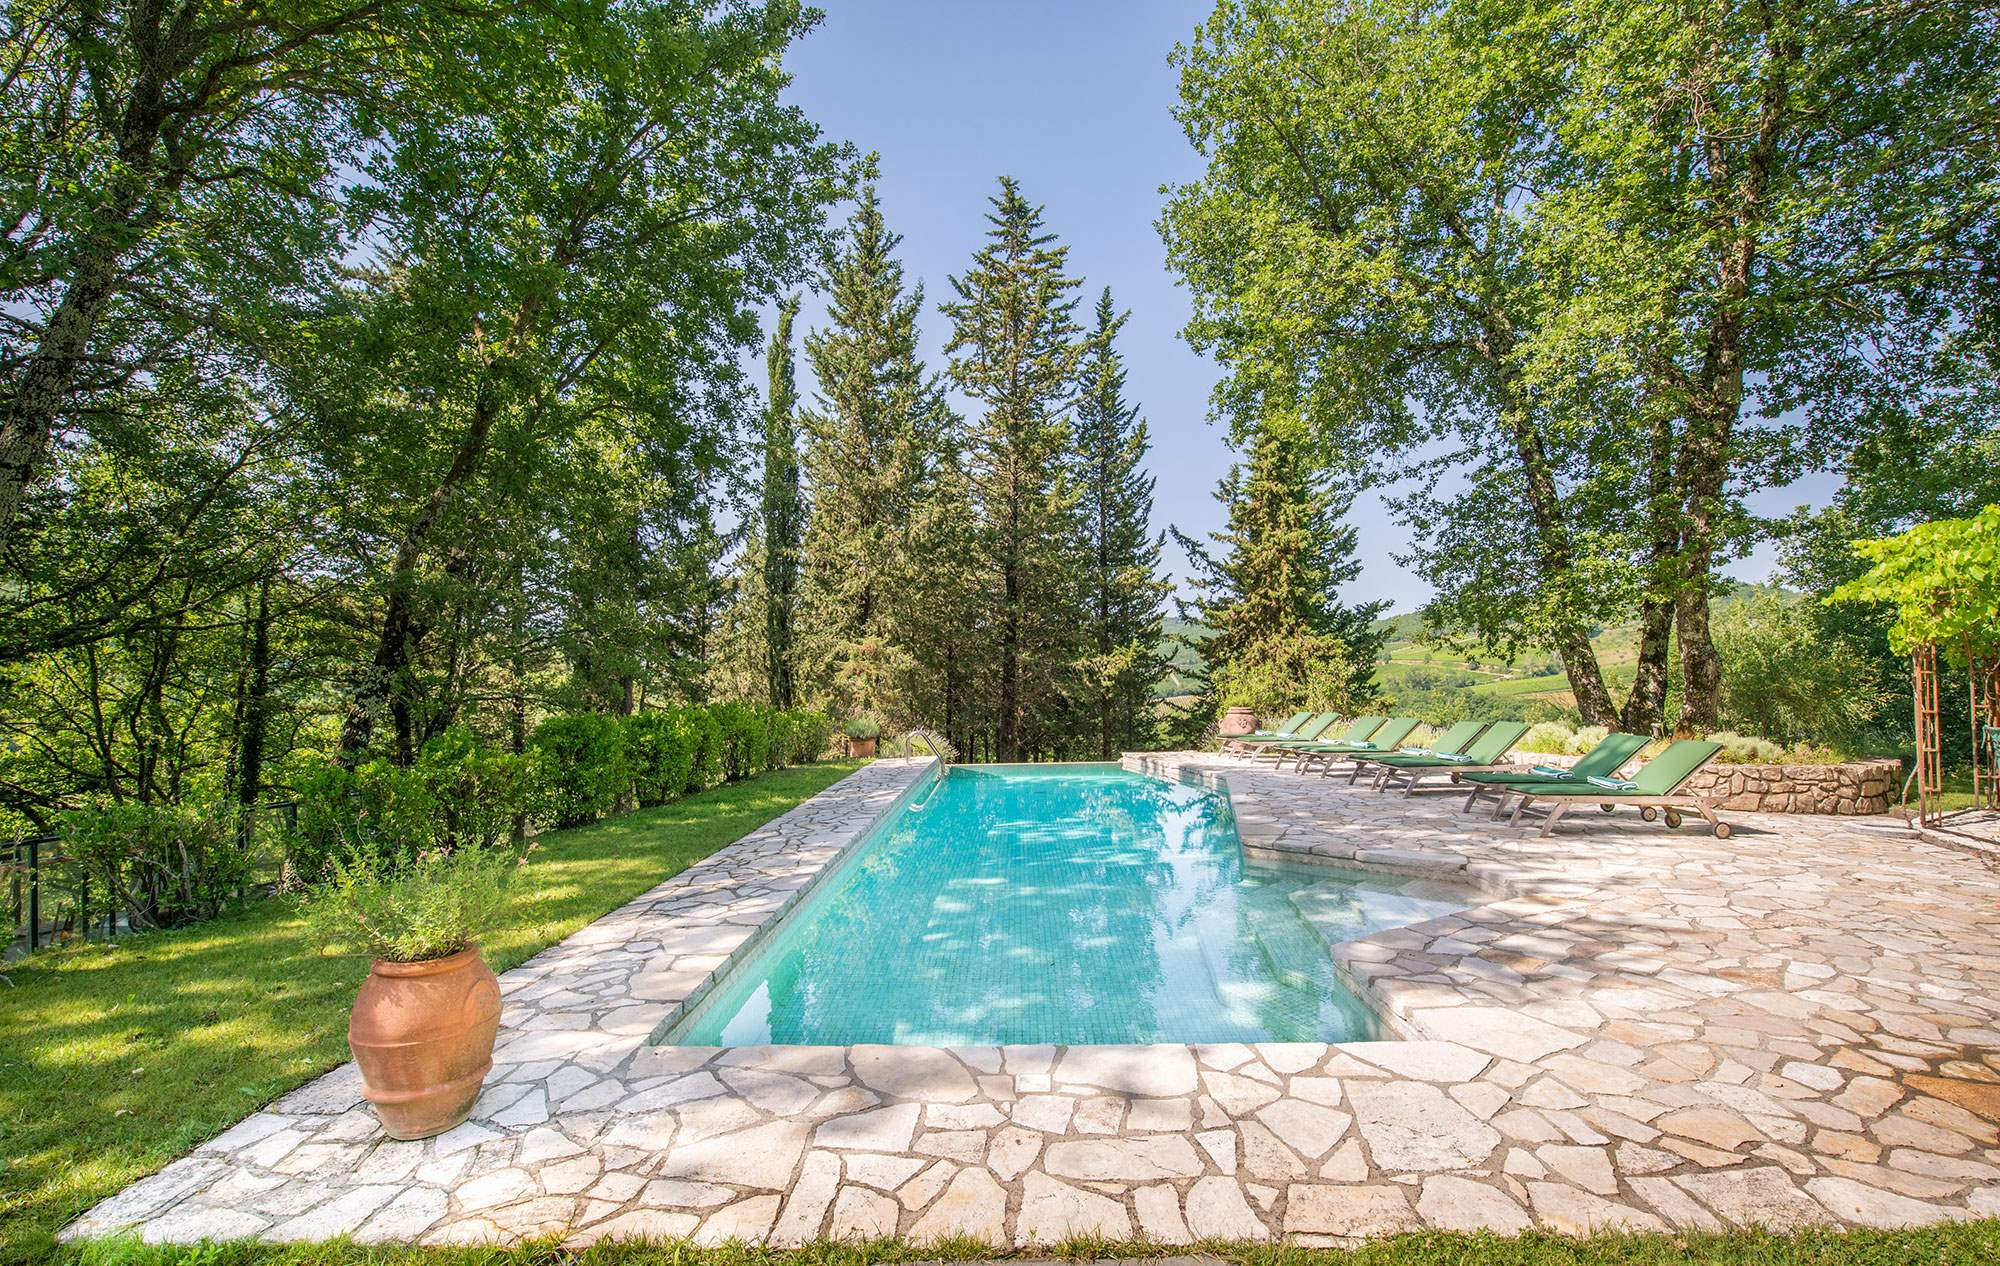 Villa Claudia, 6 Bedroom rate, 6 bedroom villa in Chianti & Countryside, Tuscany